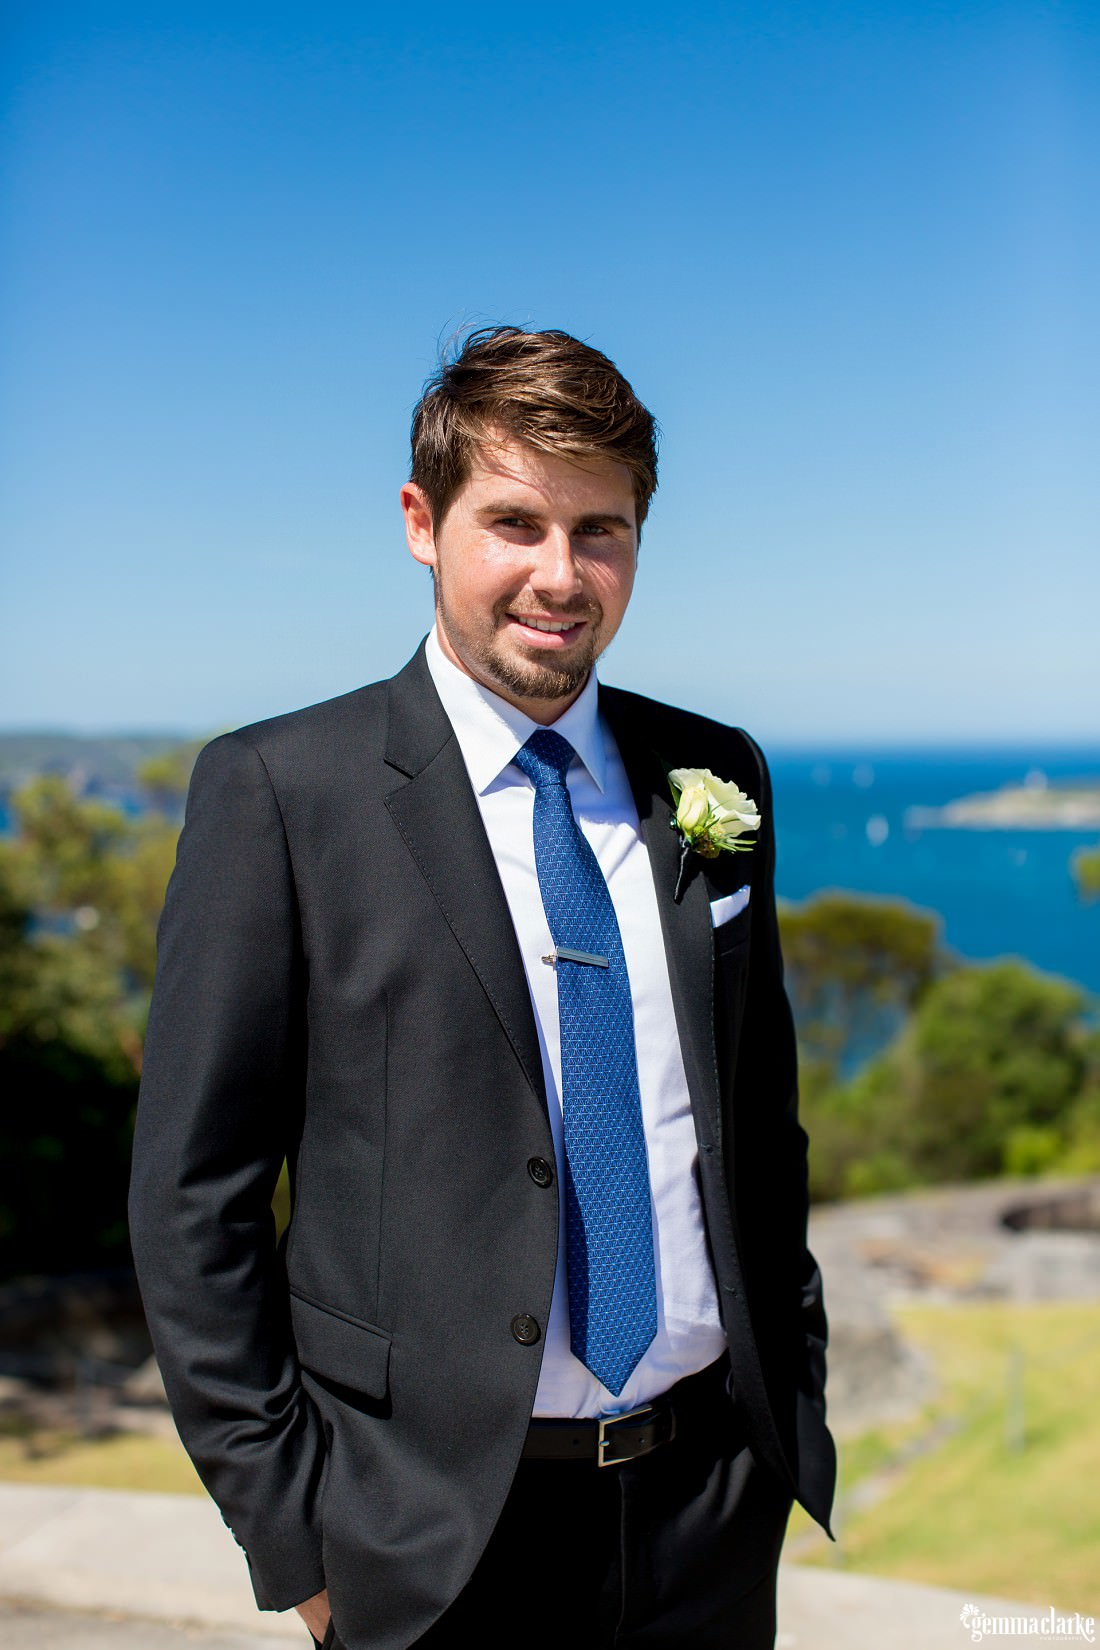 A groom in a dark suit with white shirt and blue tie stands with the Harbour in the background